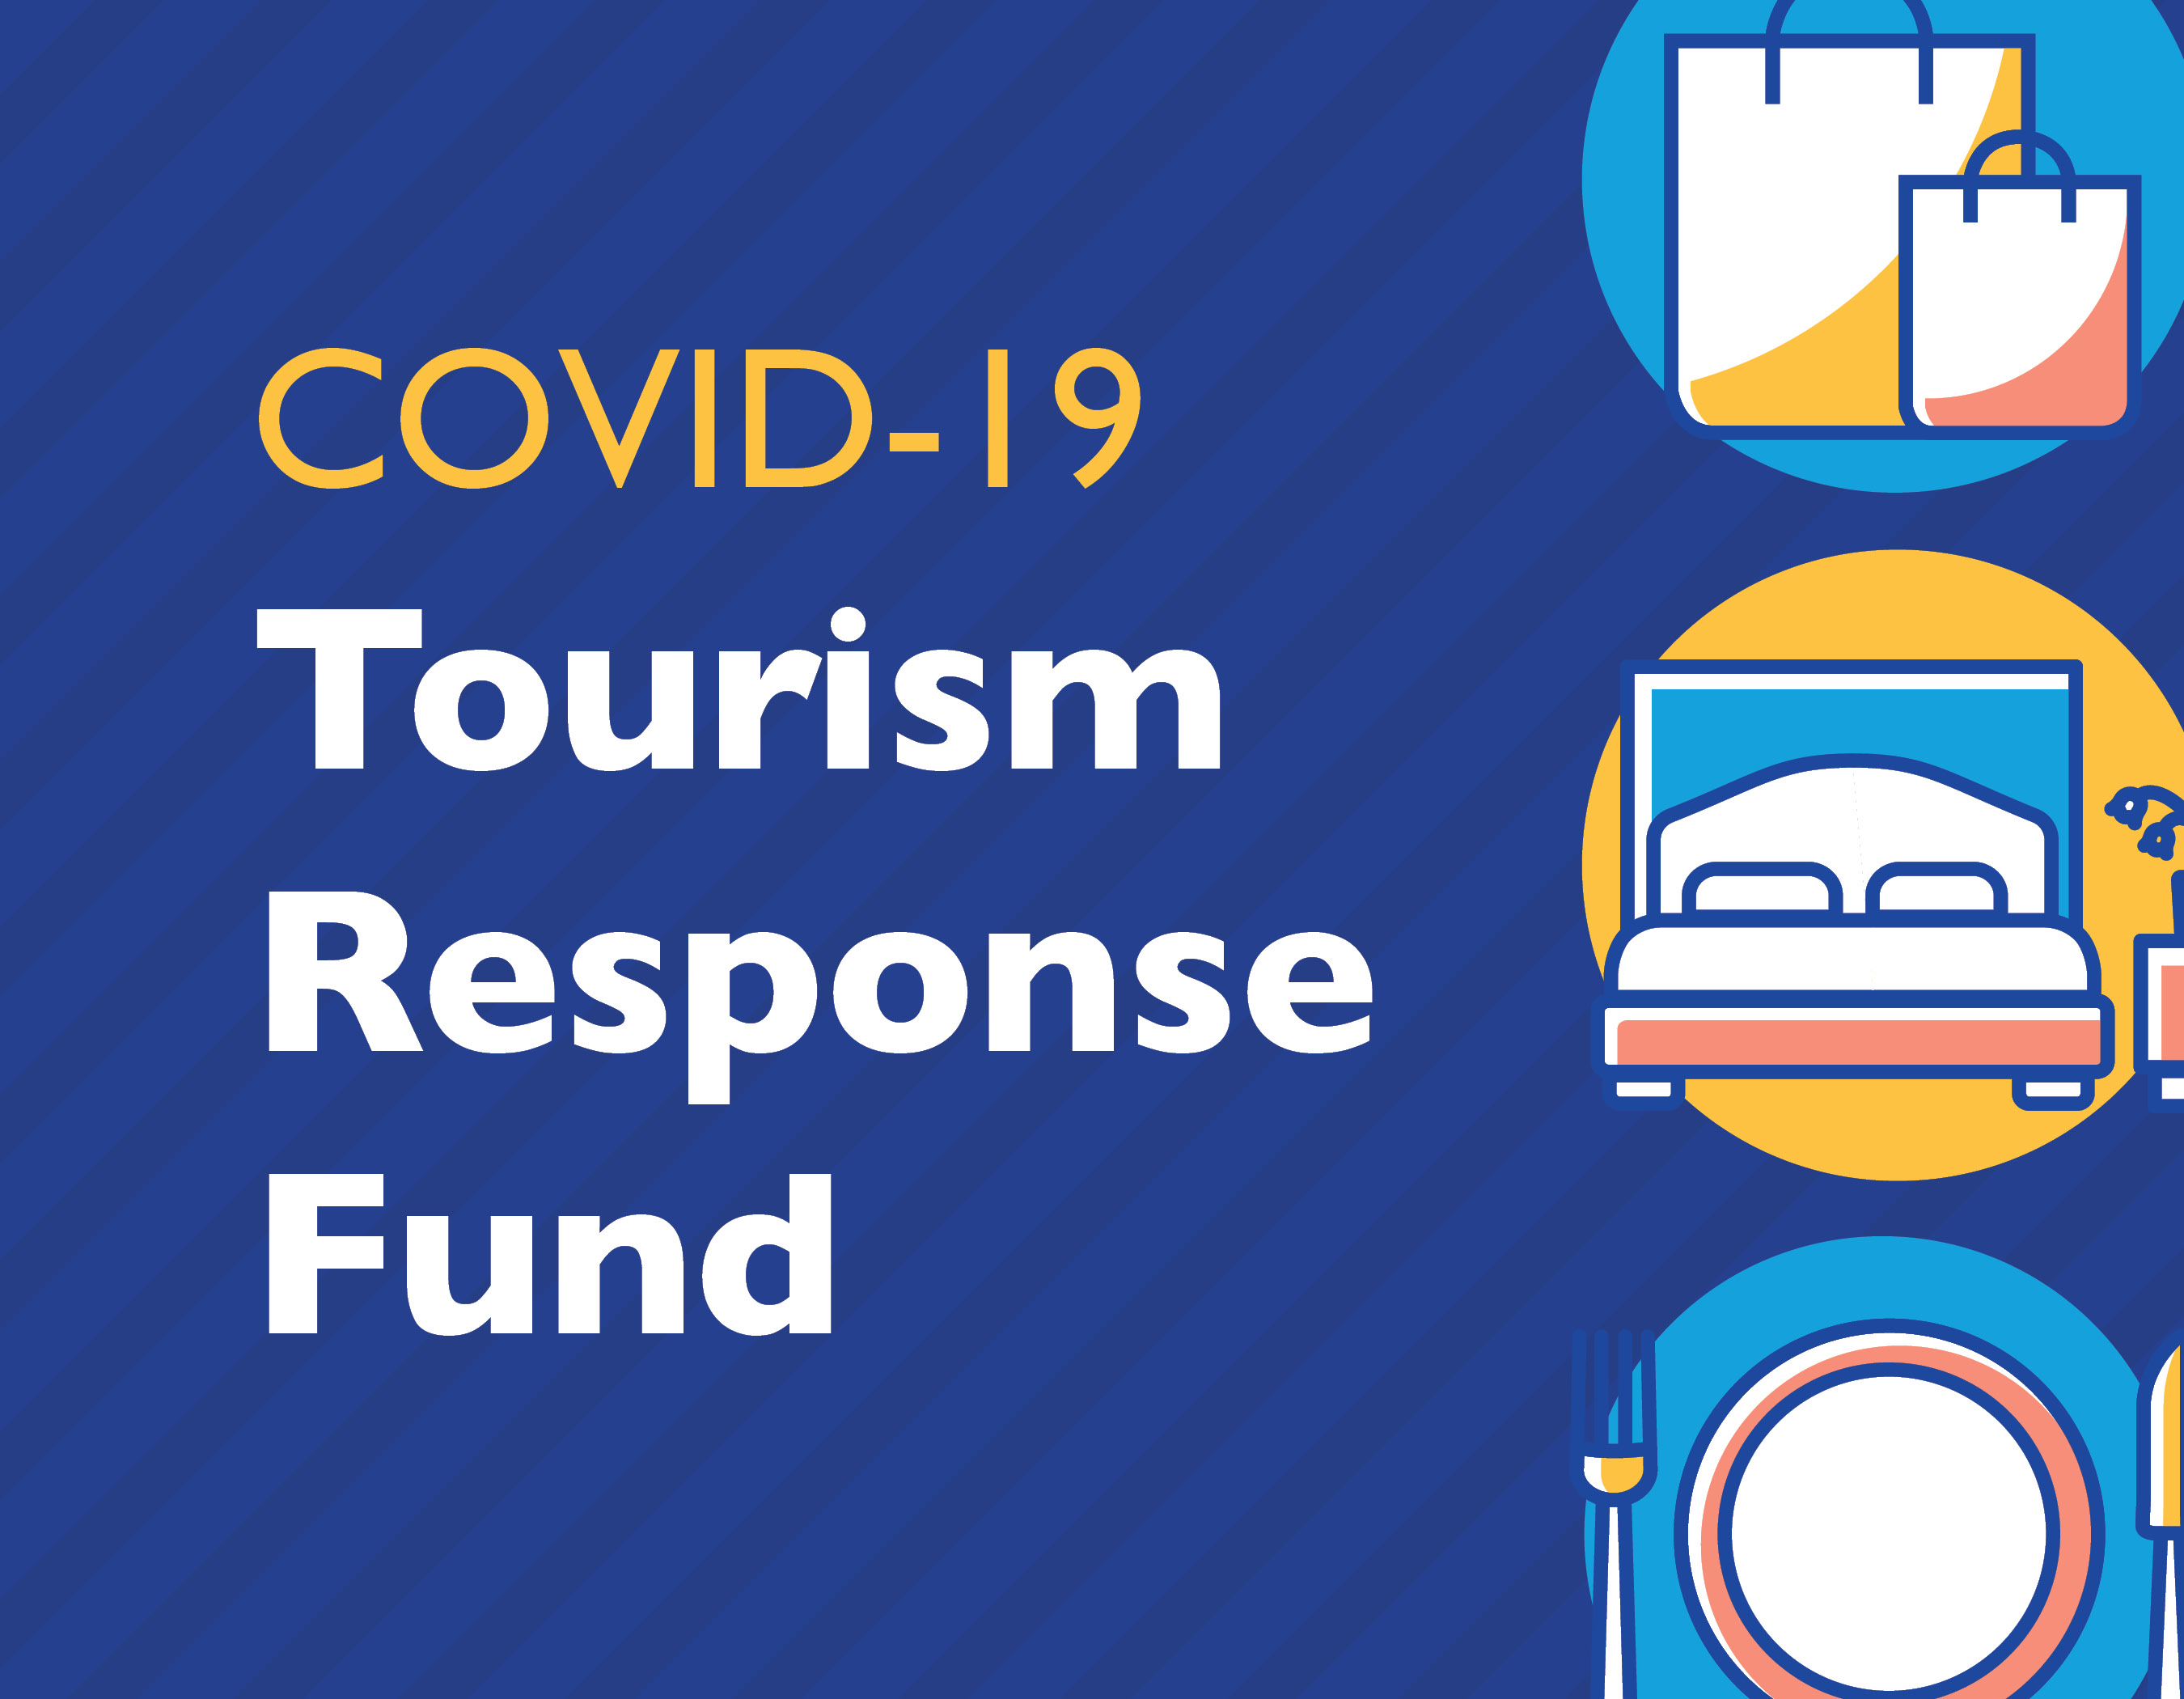 COVID Tourism Response Fund Post3